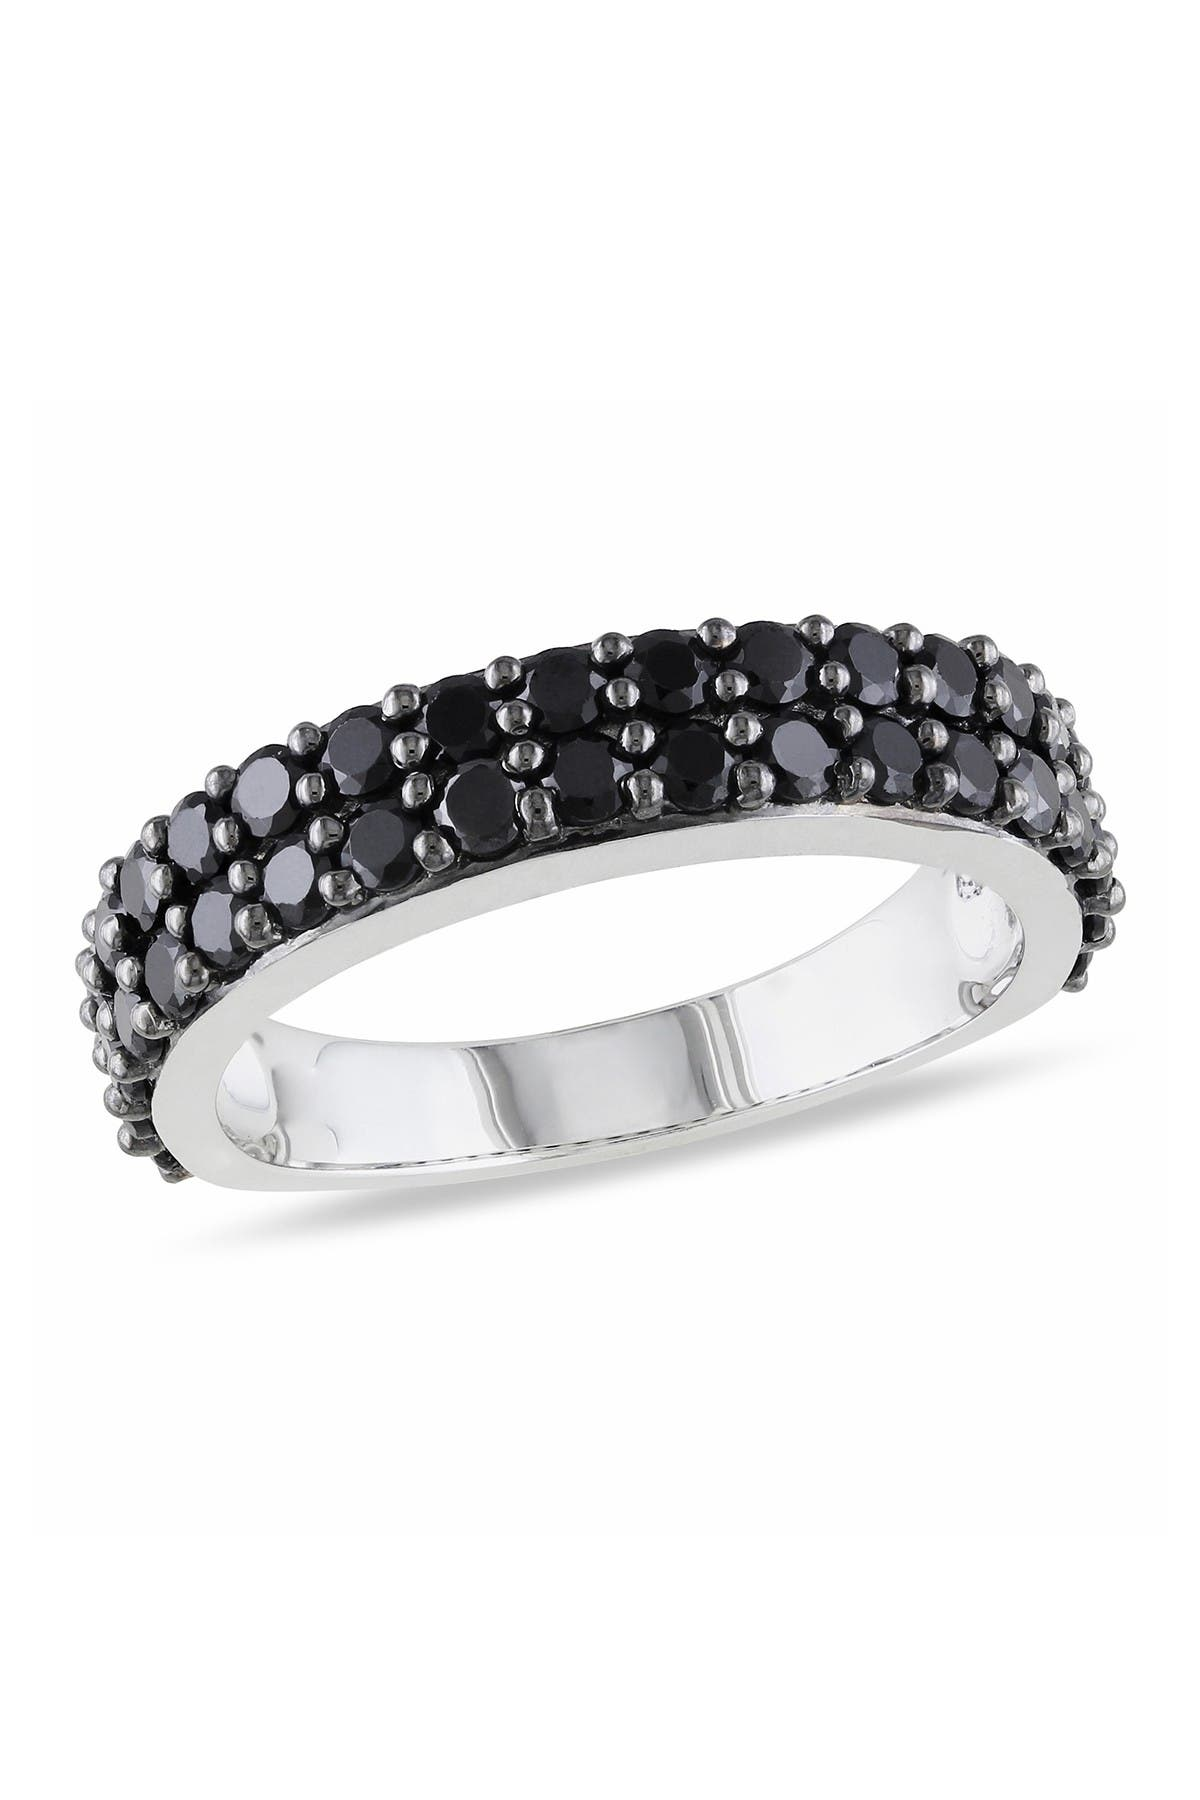 Image of Delmar Pave Black Spinel Double Row Band